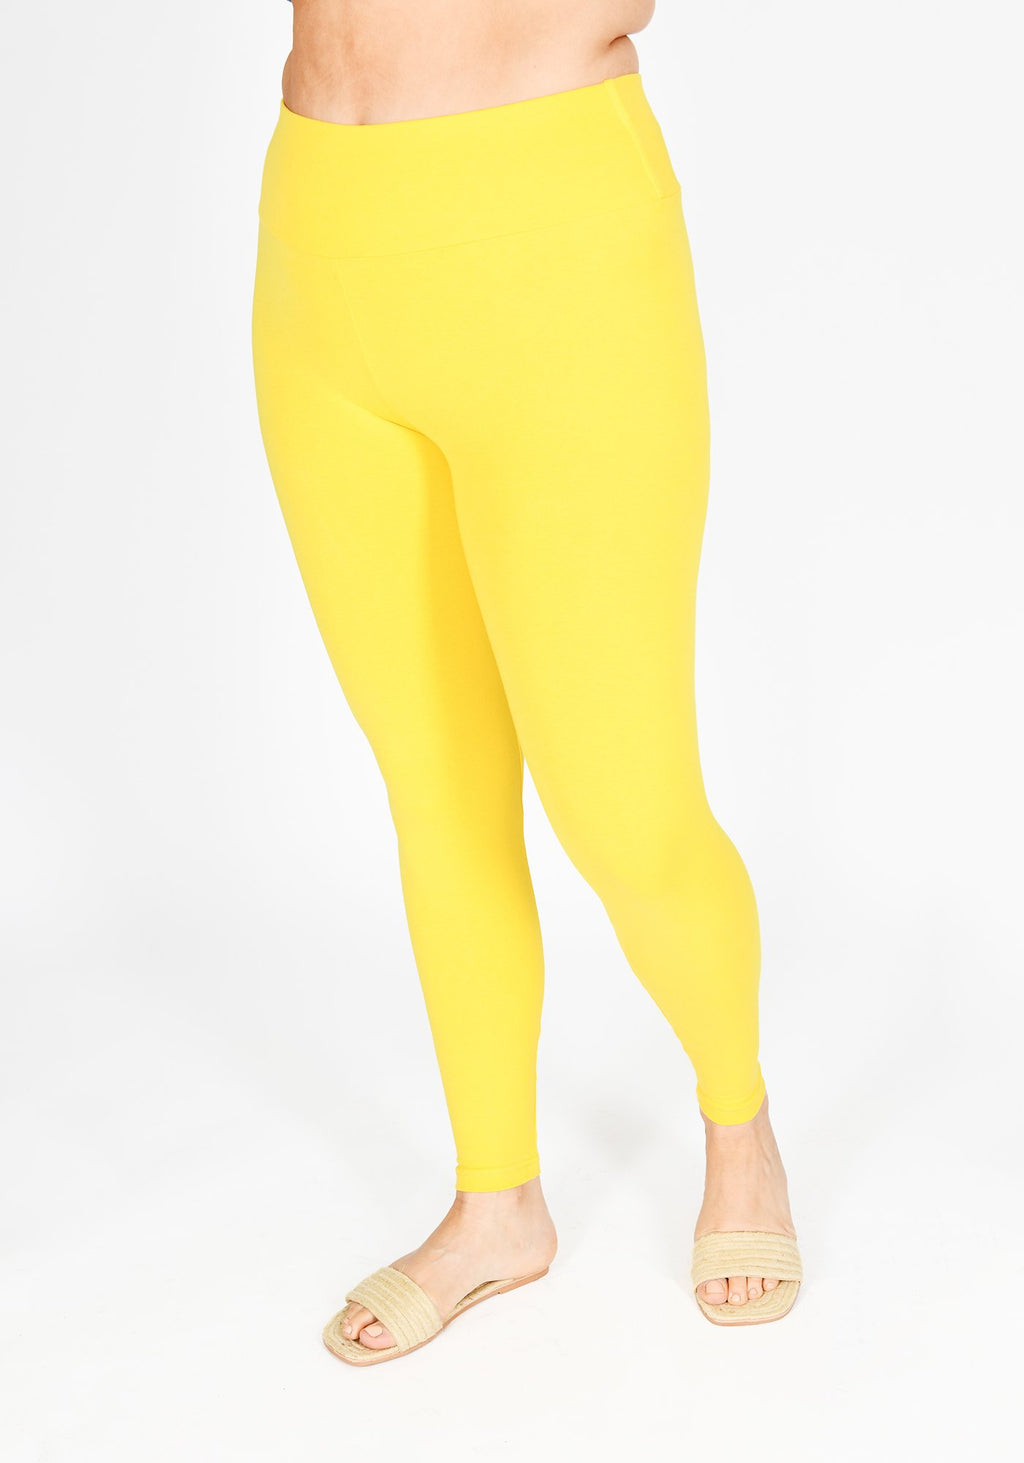 Plus Size Buttercup Yellow High Waisted Leggings 1